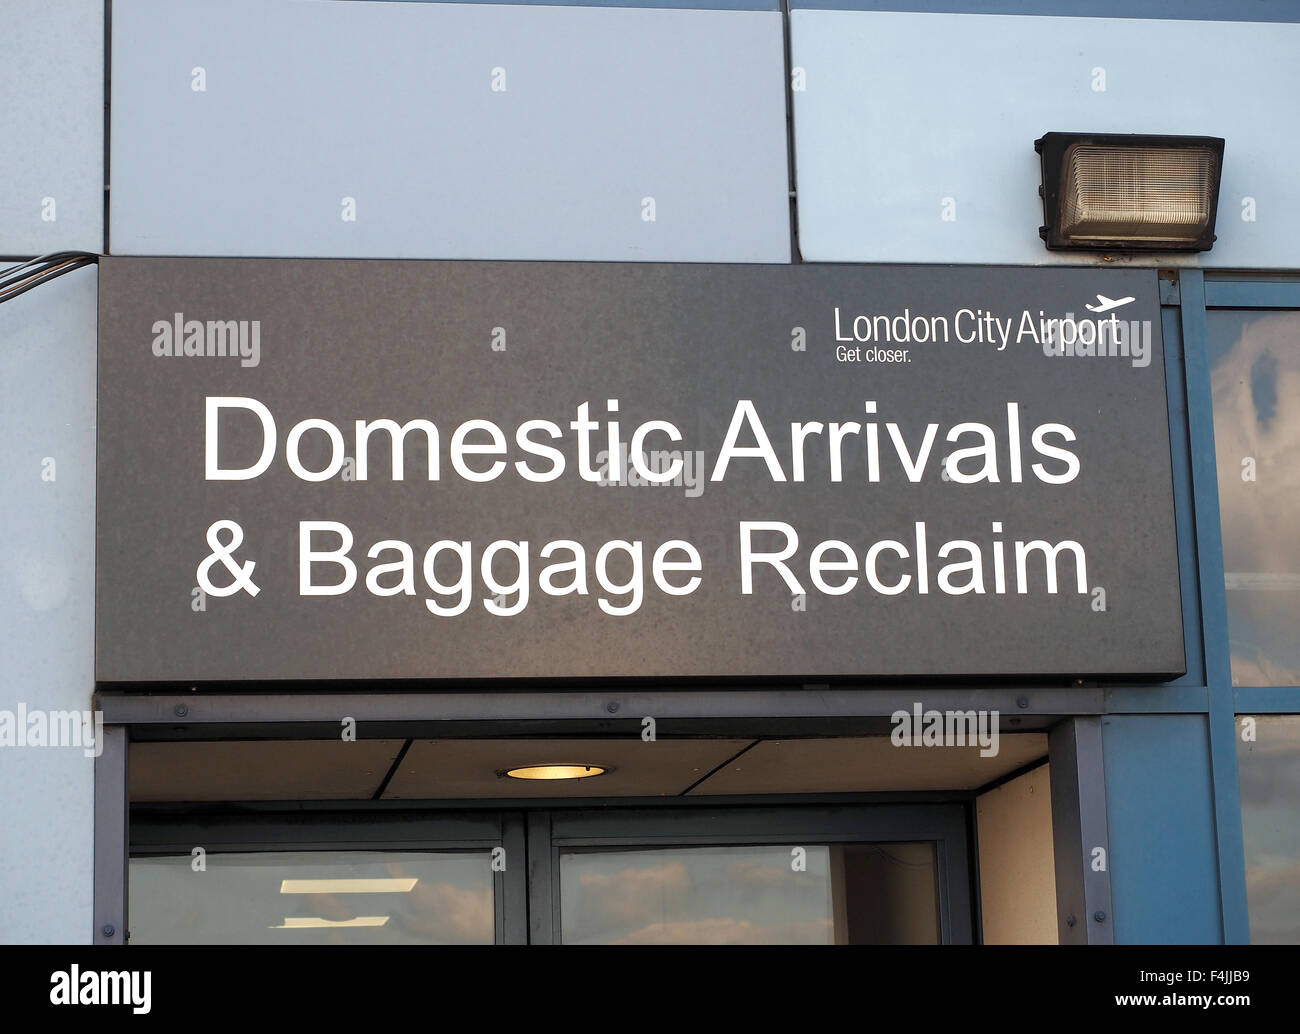 Domestic Arrivals and Baggage reclaim sign at London City Airport, London, UK - Stock Image